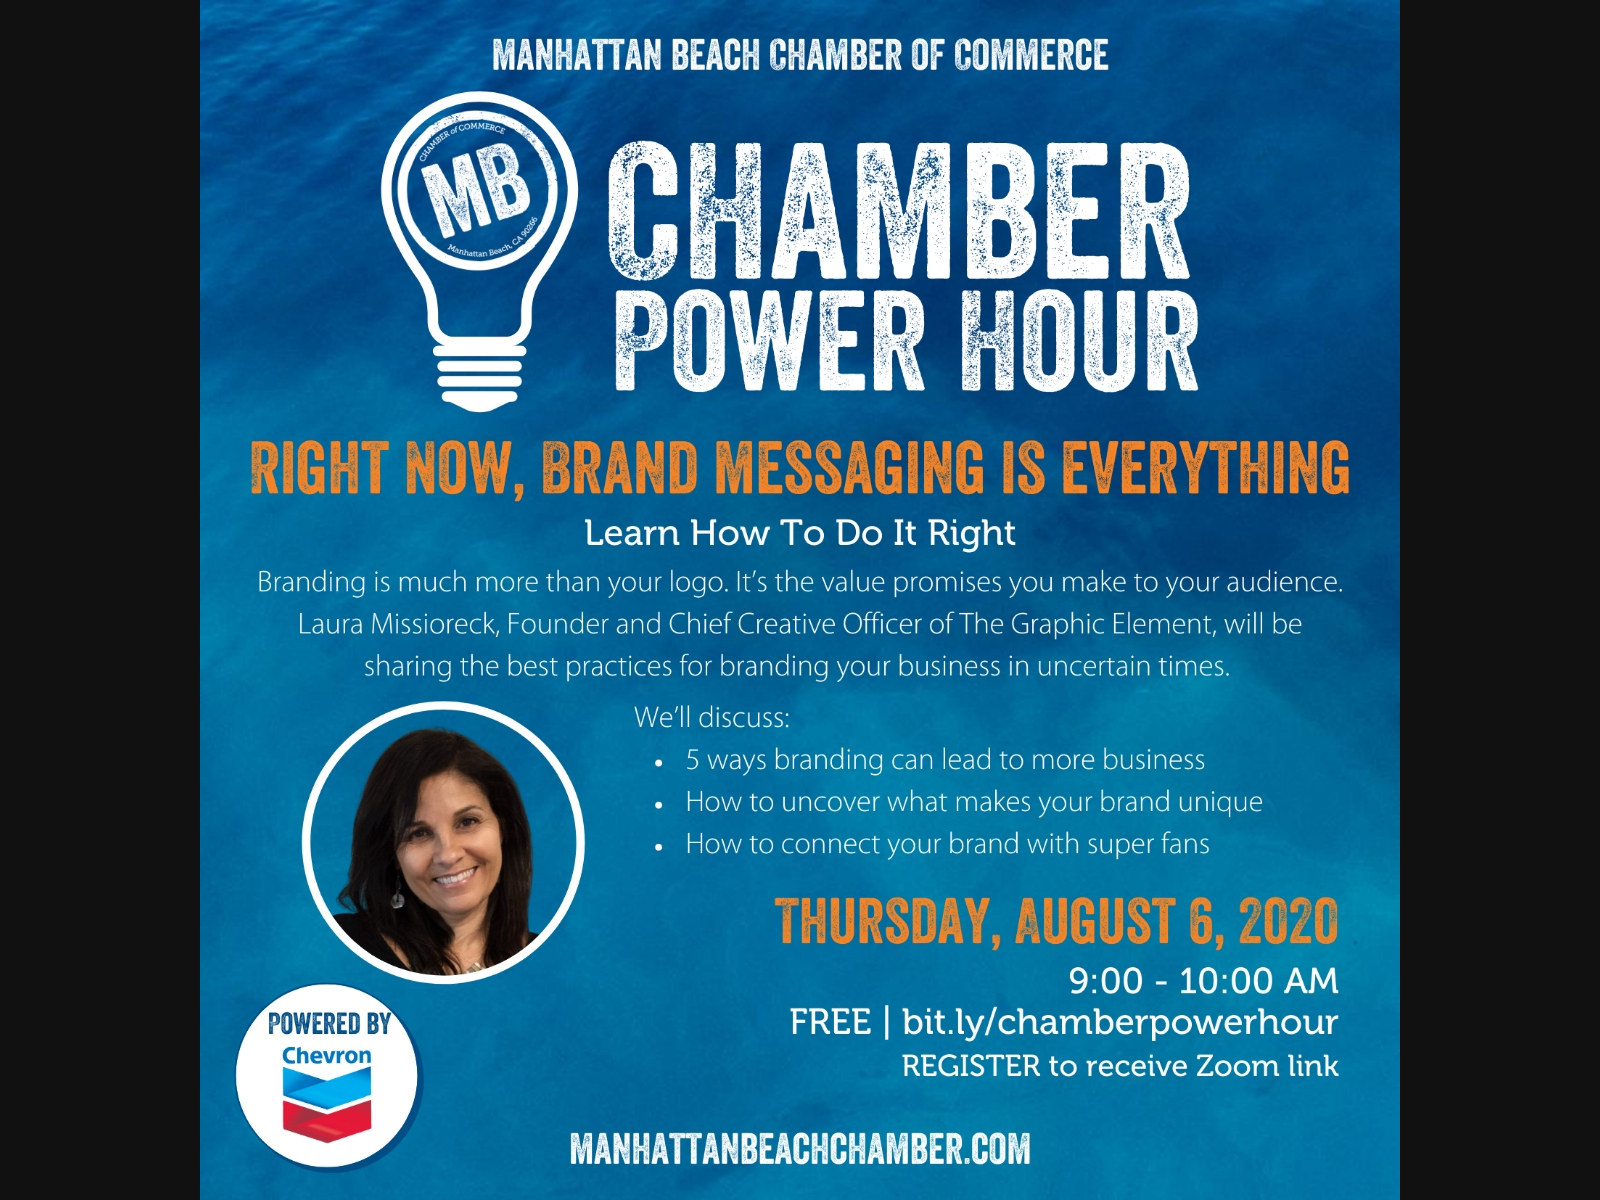 The MB Chamber Power Hour is a free webinar. The next one is scheduled for August 6 and is free. Register in advance.